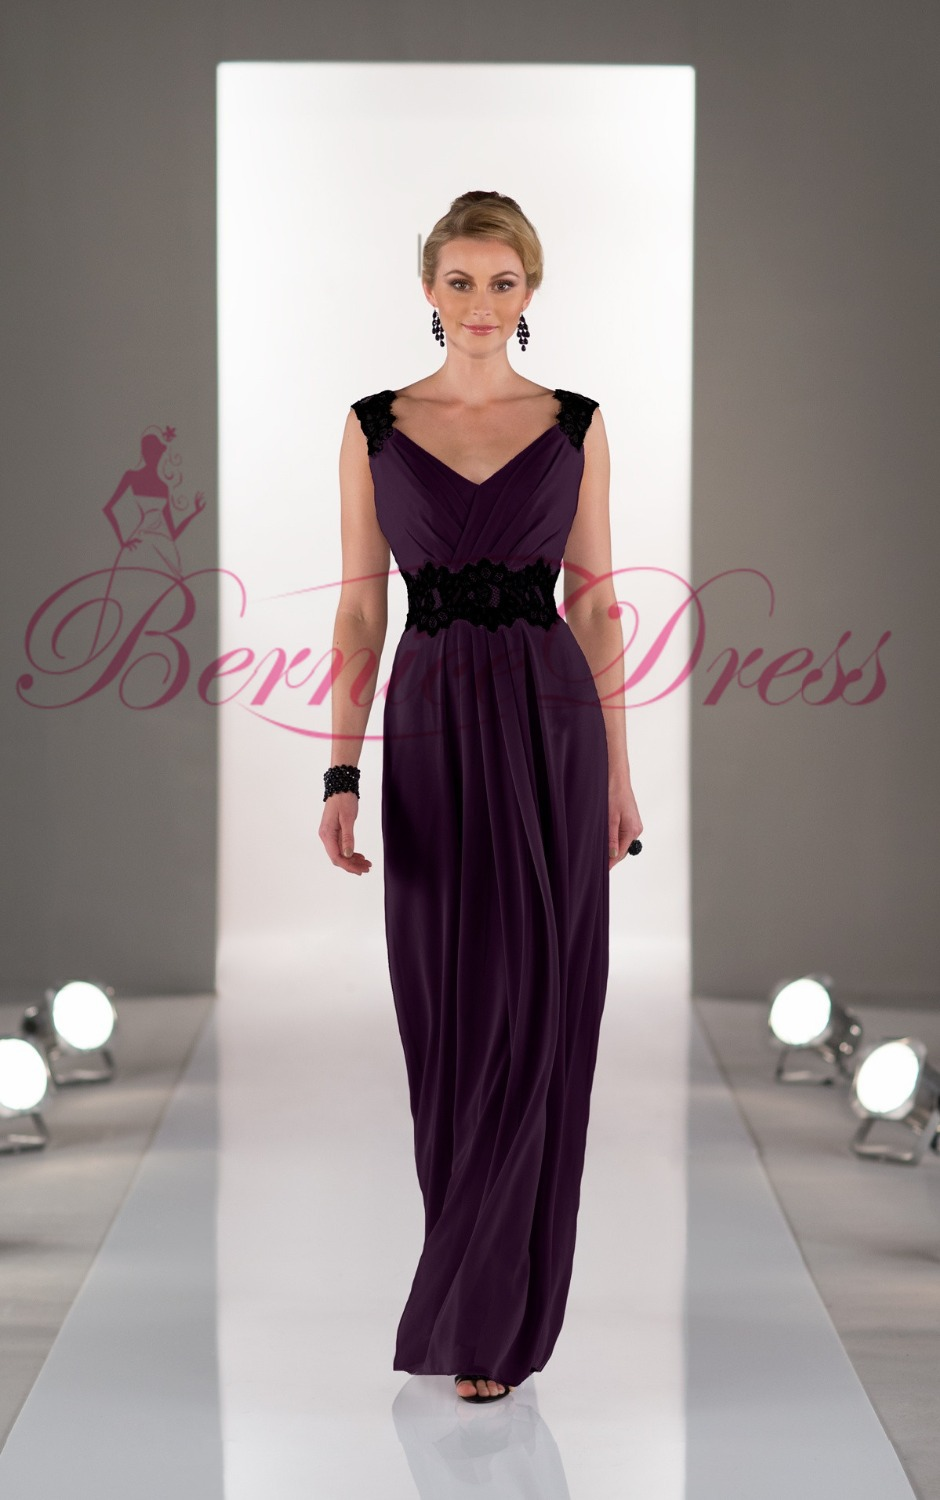 Bridesmaid dresses dark purple image collections braidsmaid bridesmaid dresses dark purple choice image braidsmaid dress compare prices on bridesmaid dresses dark purple online ombrellifo Image collections